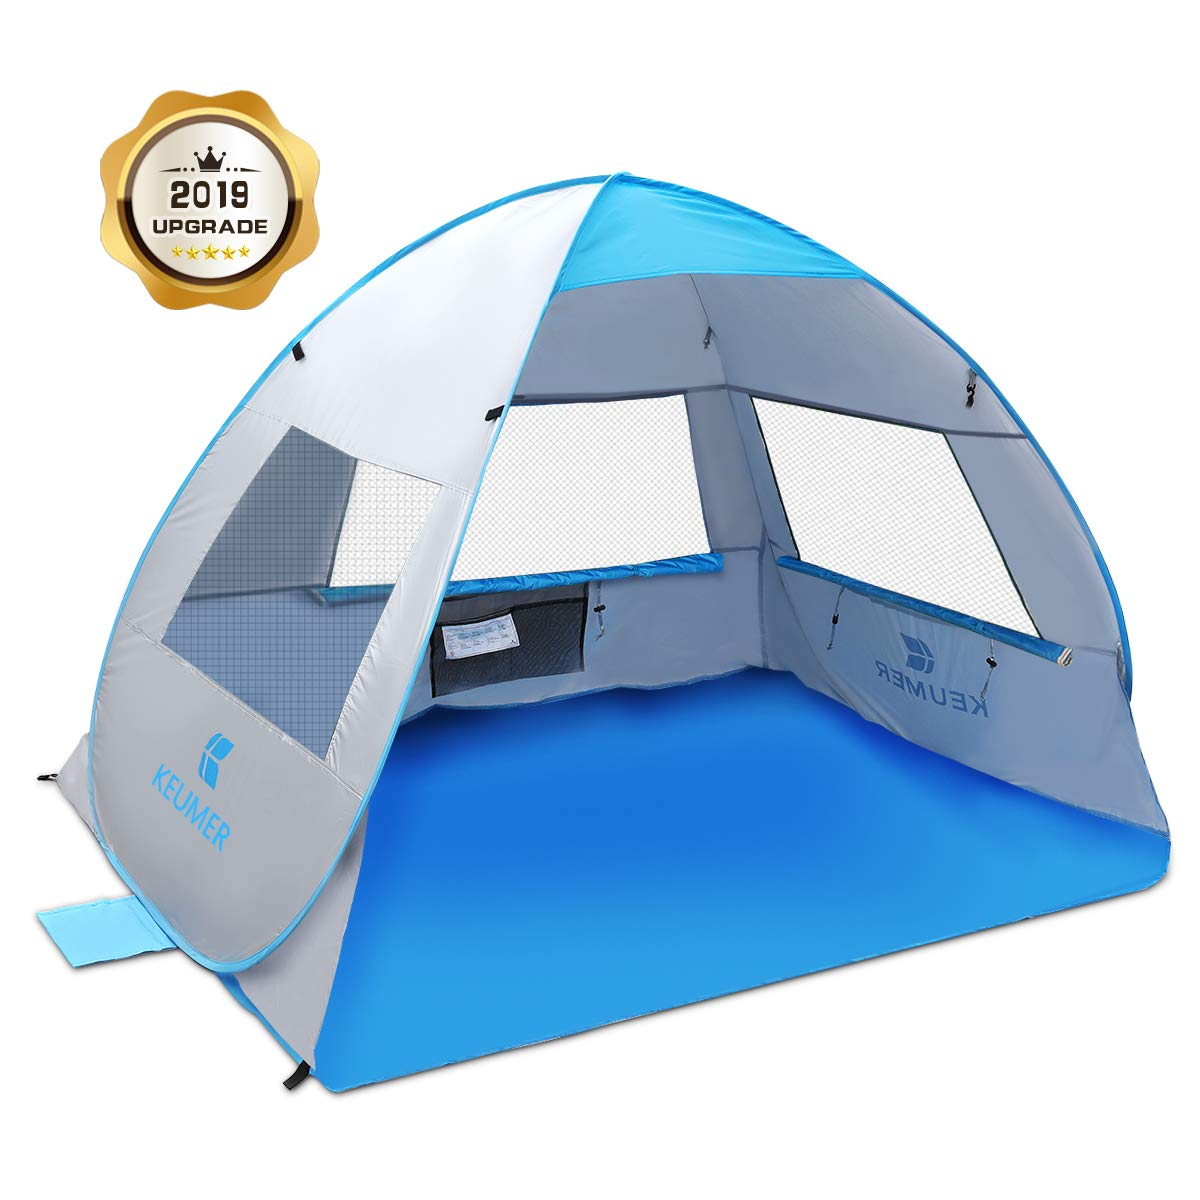 SGODDE Large Pop Up Beach Tent 2019 New Anti UV Sun Shelter Tents Portable Automatic Baby Beach Tent Instant Easy Outdoor Cabana for 3-4 Persons for Family Adults by SGODDE